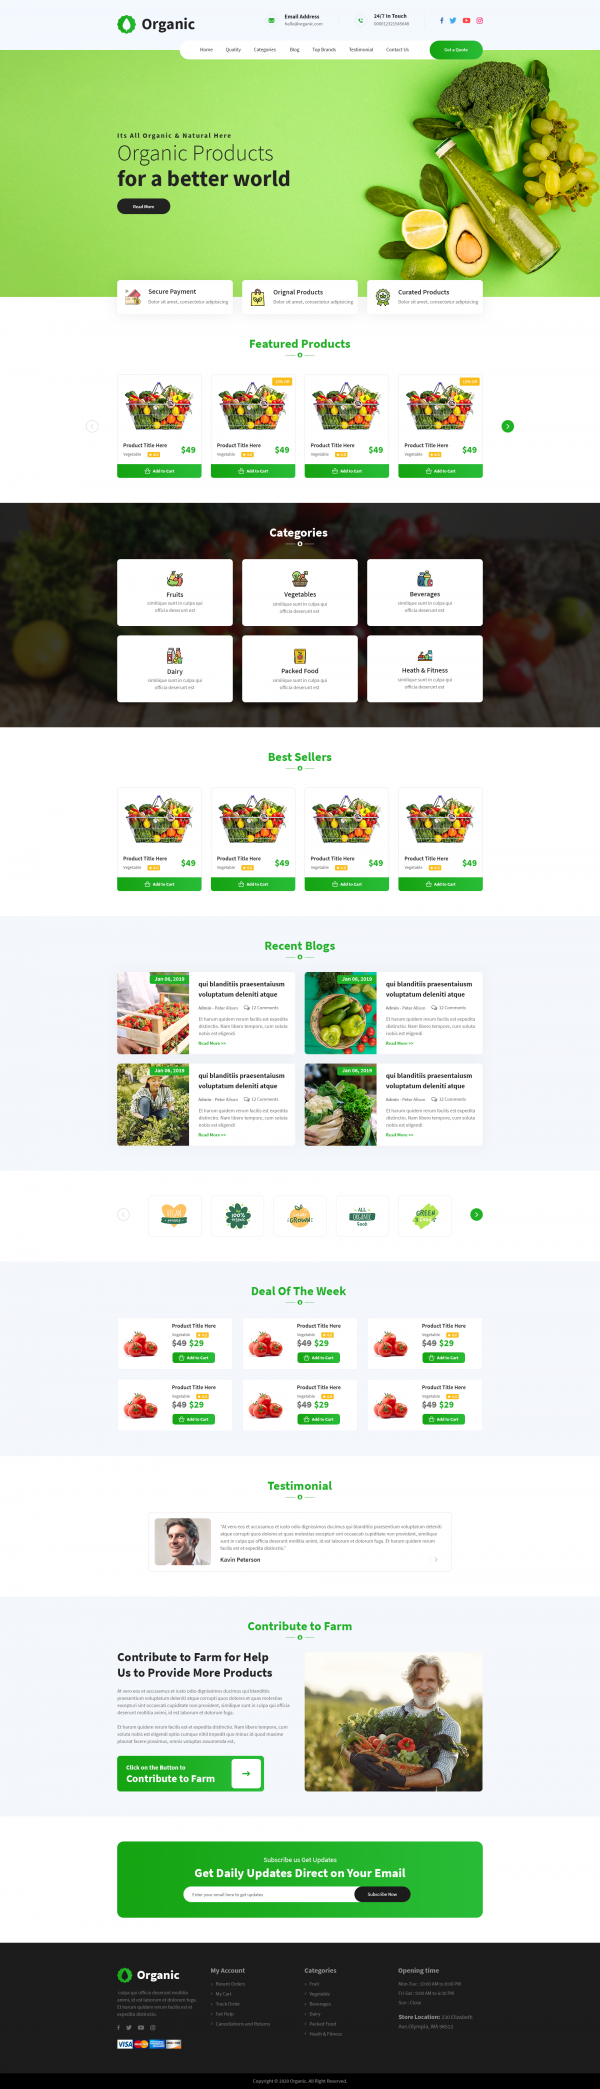 Organic-Farm-WordPress-Theme